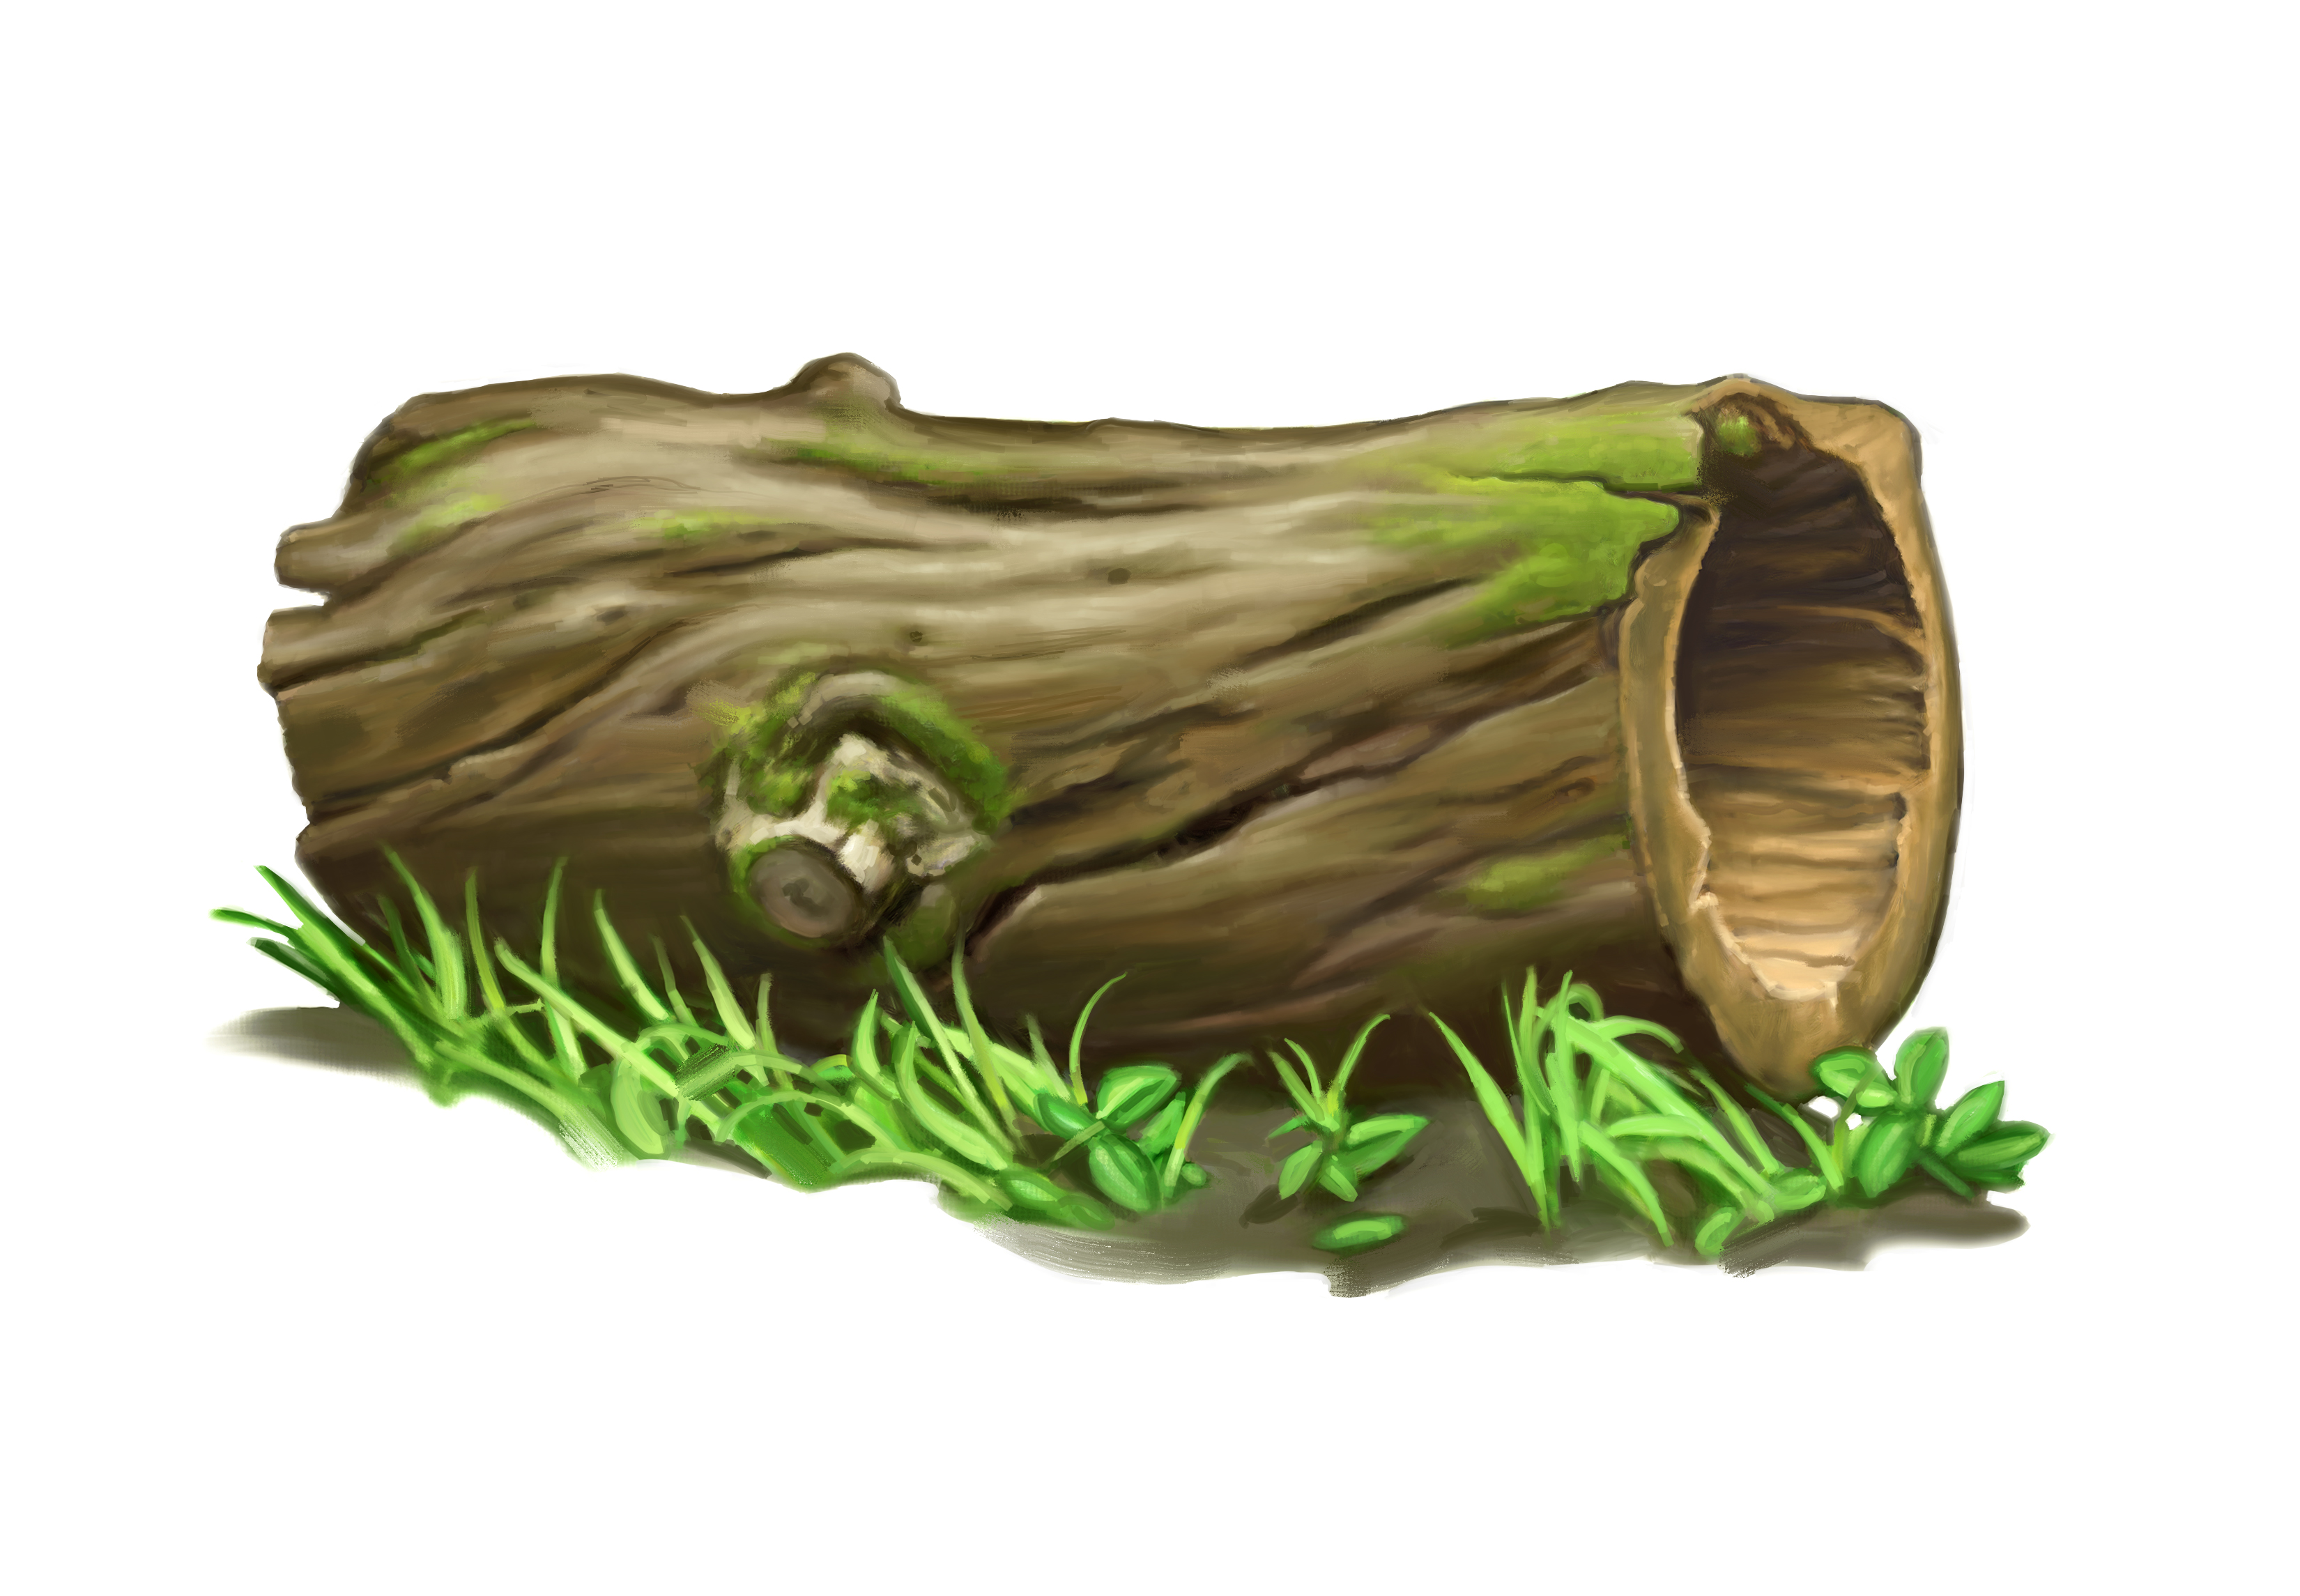 Timber clipart hollow log Log · Tree Cliparts Silhouette